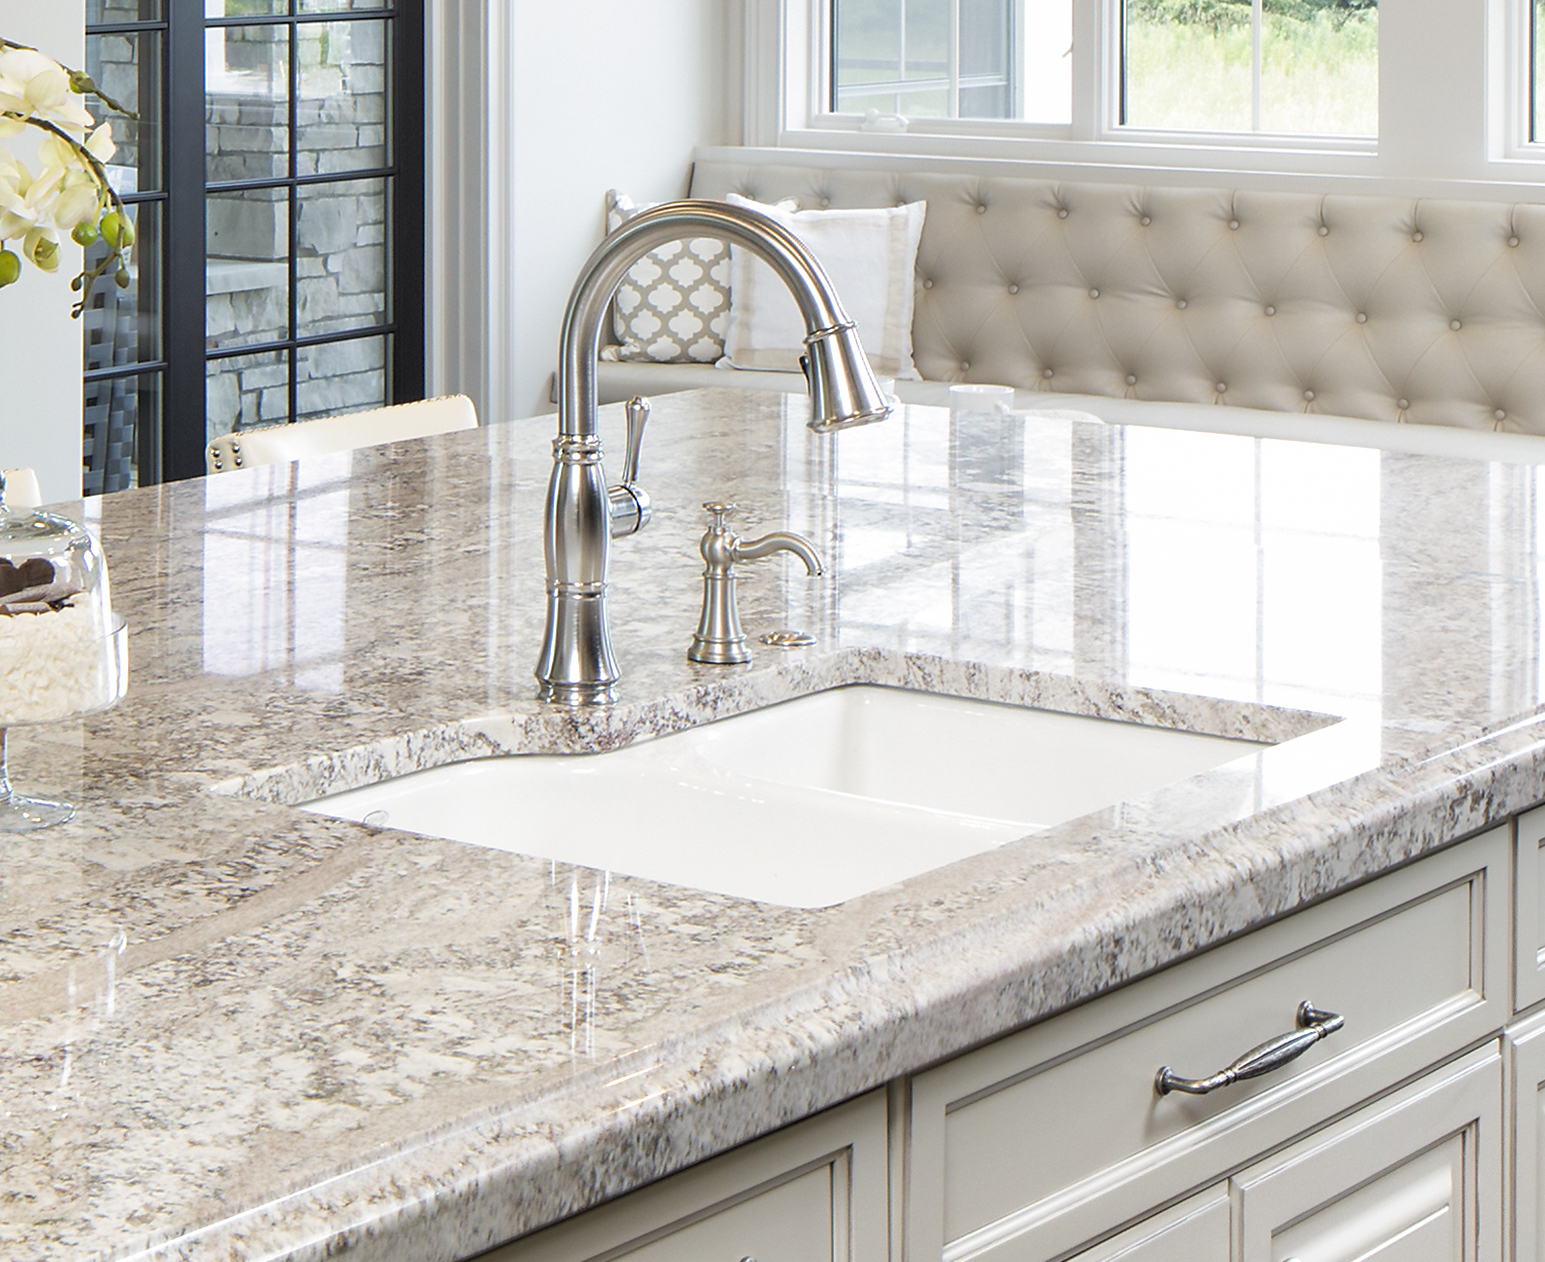 Which sink is suitable for a granite countertop kitchen sink set in granite countertop by cu0026d granite minneapolis mn XNPIHXC